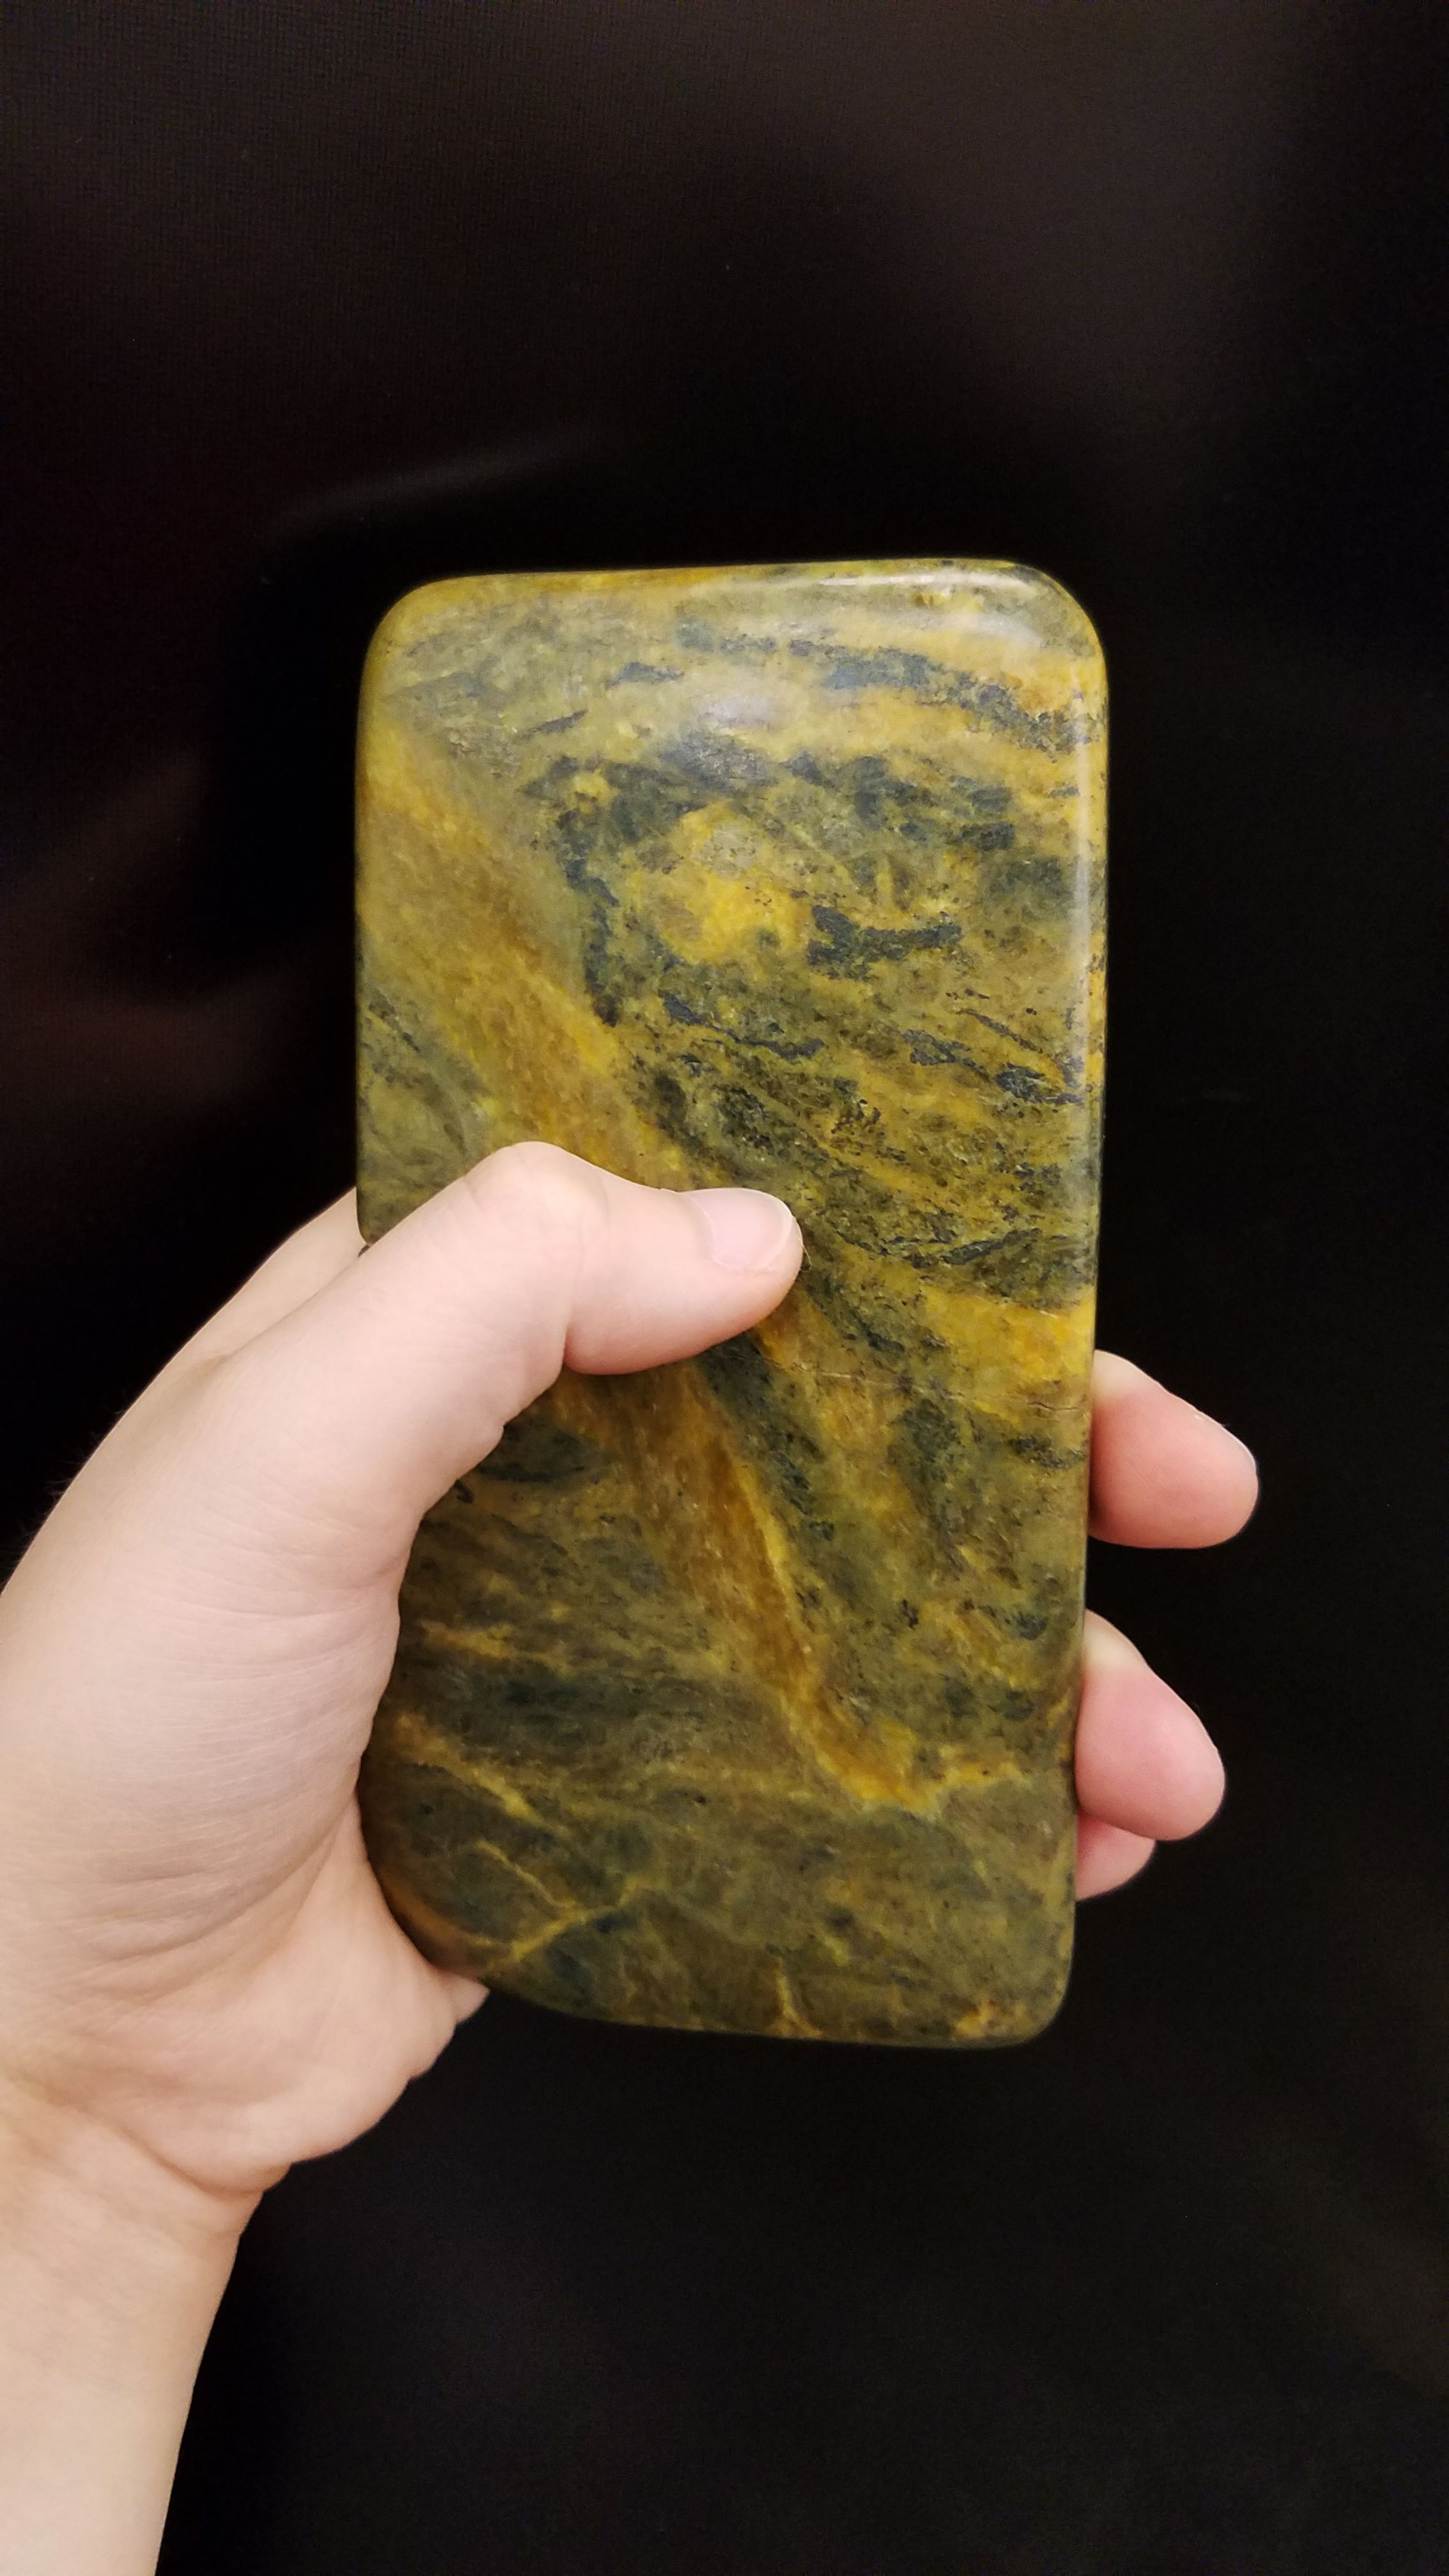 Stone Phone - Soap Stone (2017-ongoing) - Also available in Alabaster and Sand Stone